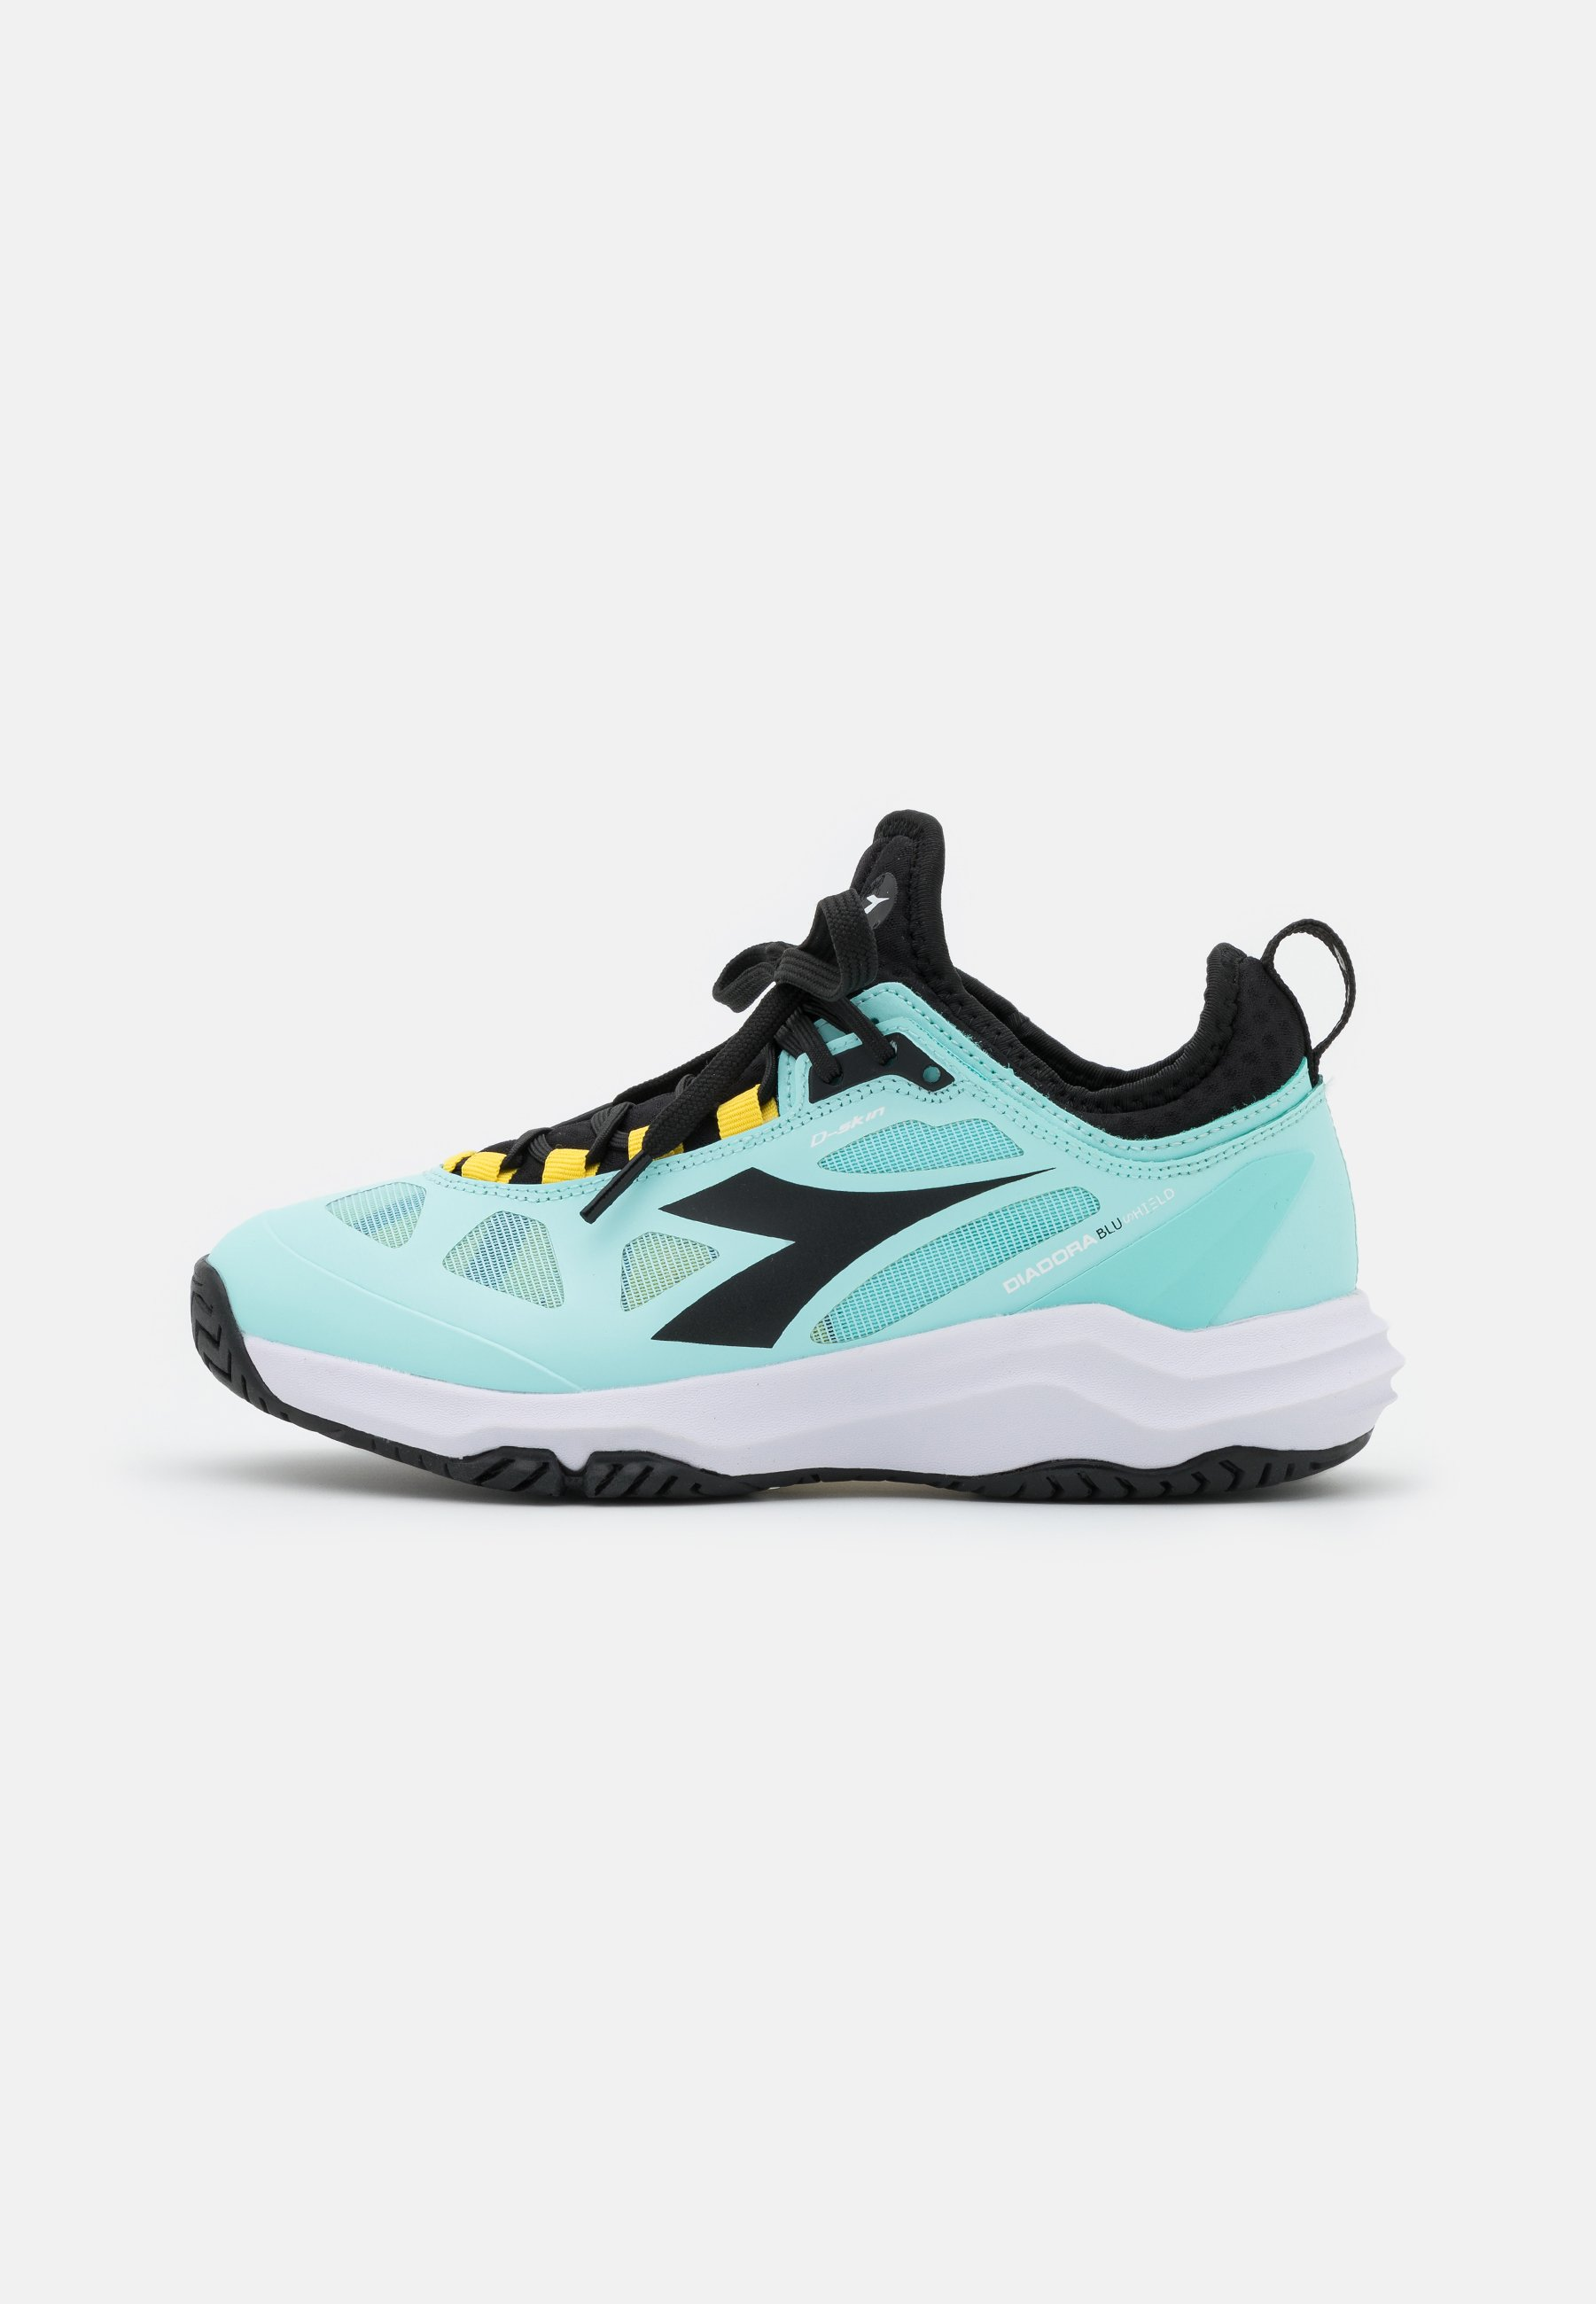 Femme SPEED BLUSHIELD FLY 3 - Chaussures de tennis toutes surfaces